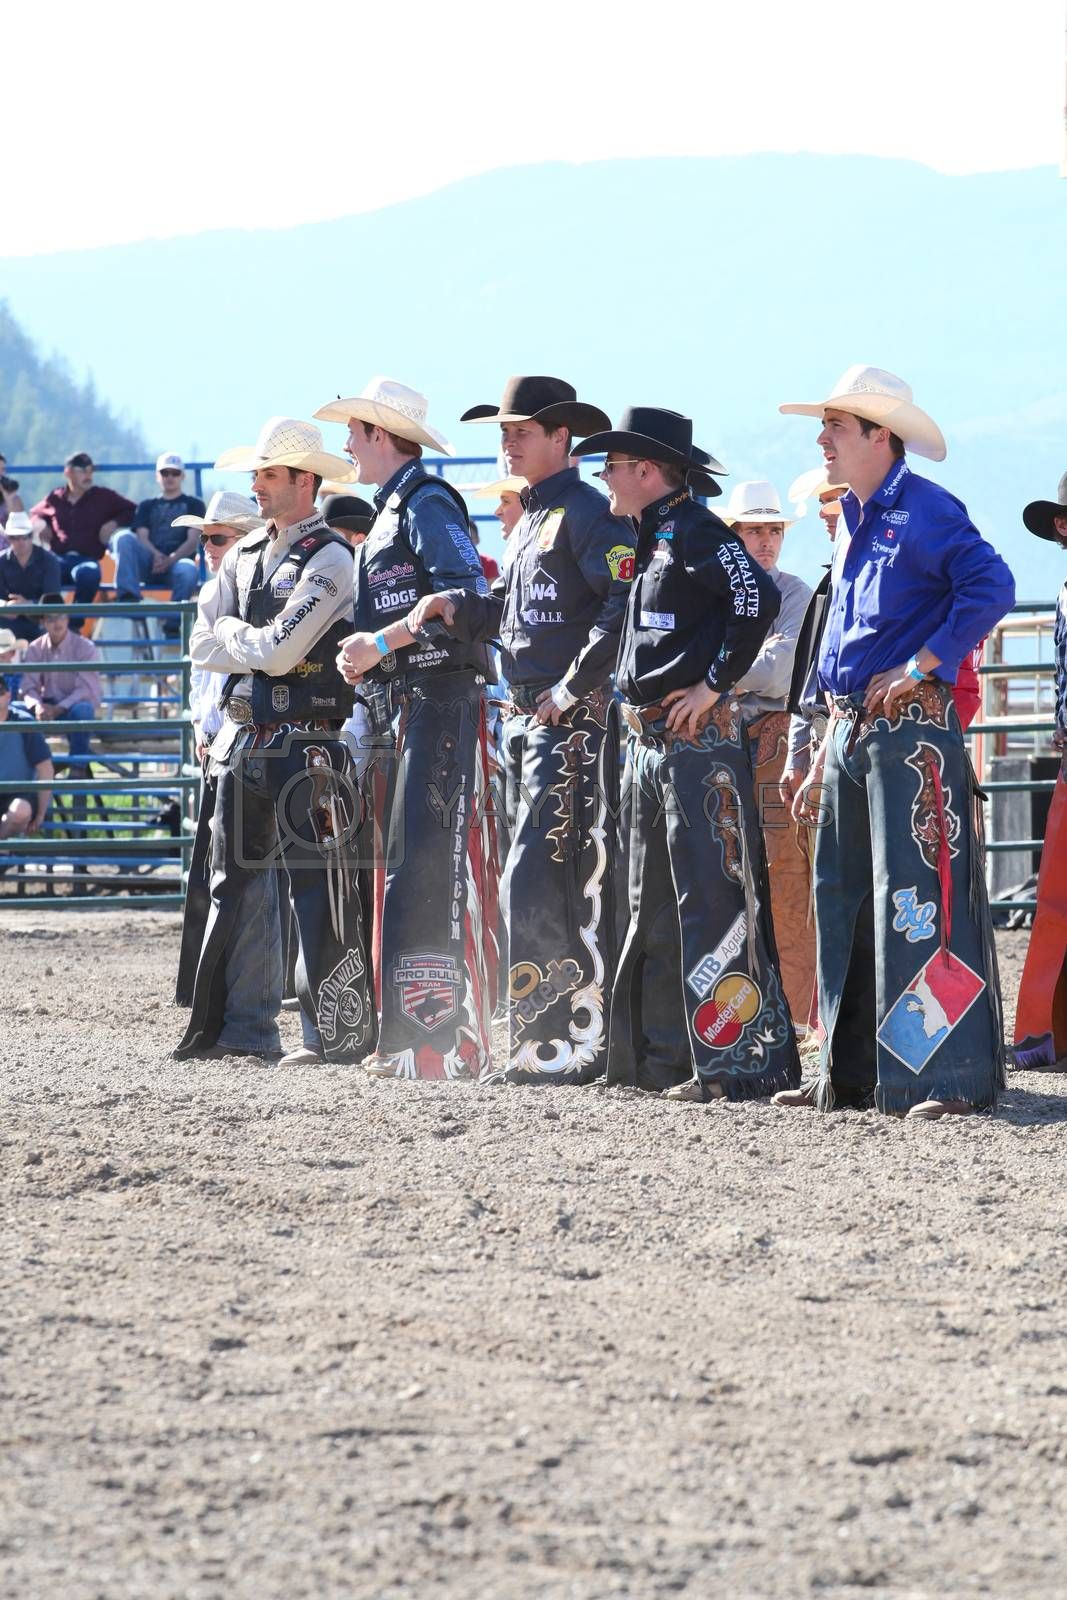 MERRITT, B.C. CANADA - May 30, 2015: Bull riders riding in the opening ceremony of The 3rd Annual Ty Pozzobon Invitational PBR Event.